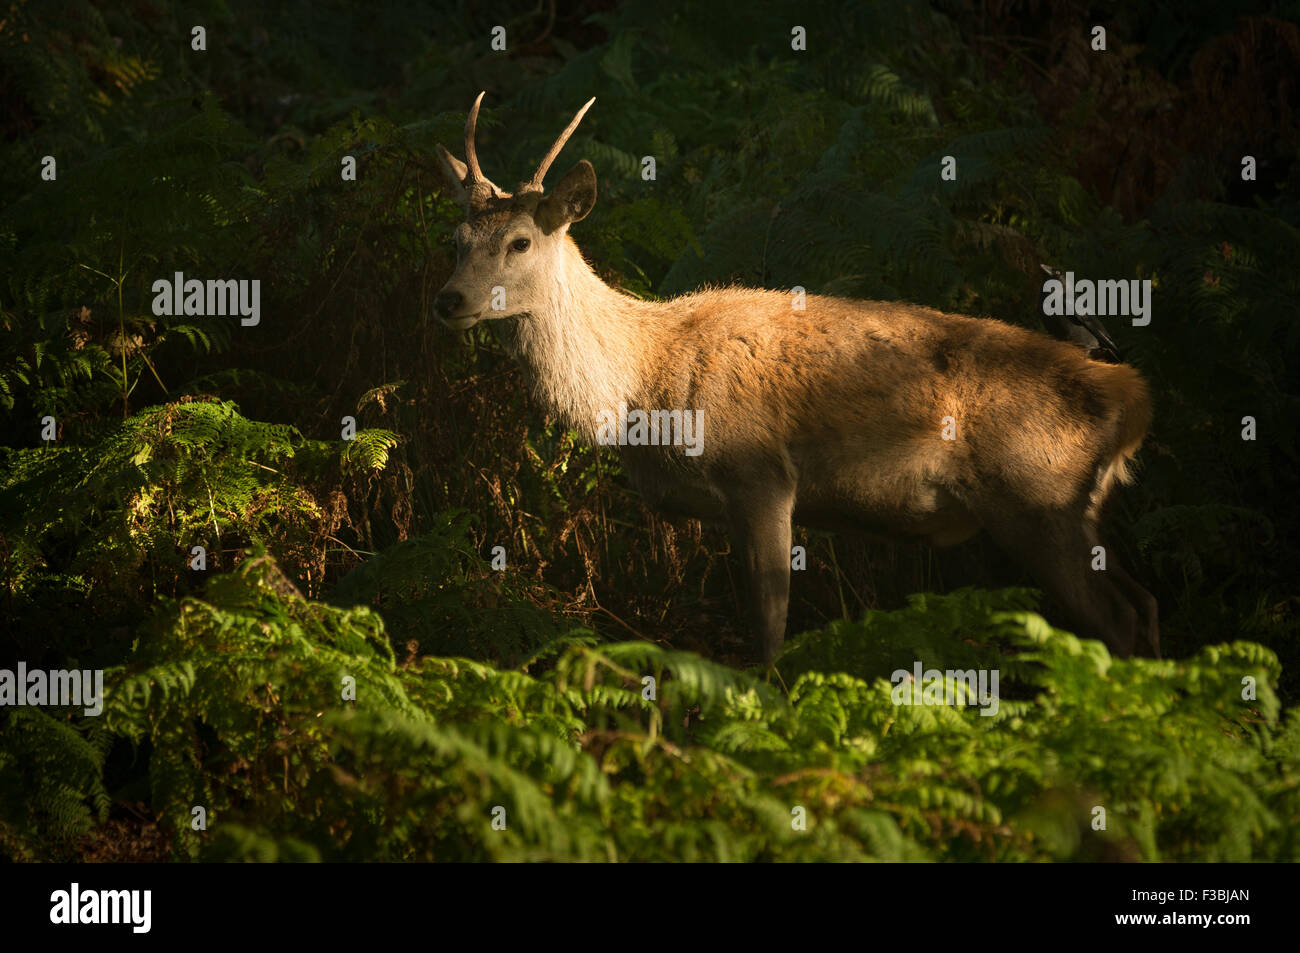 Young red deer stag being groomed by Jackdaw - Stock Image